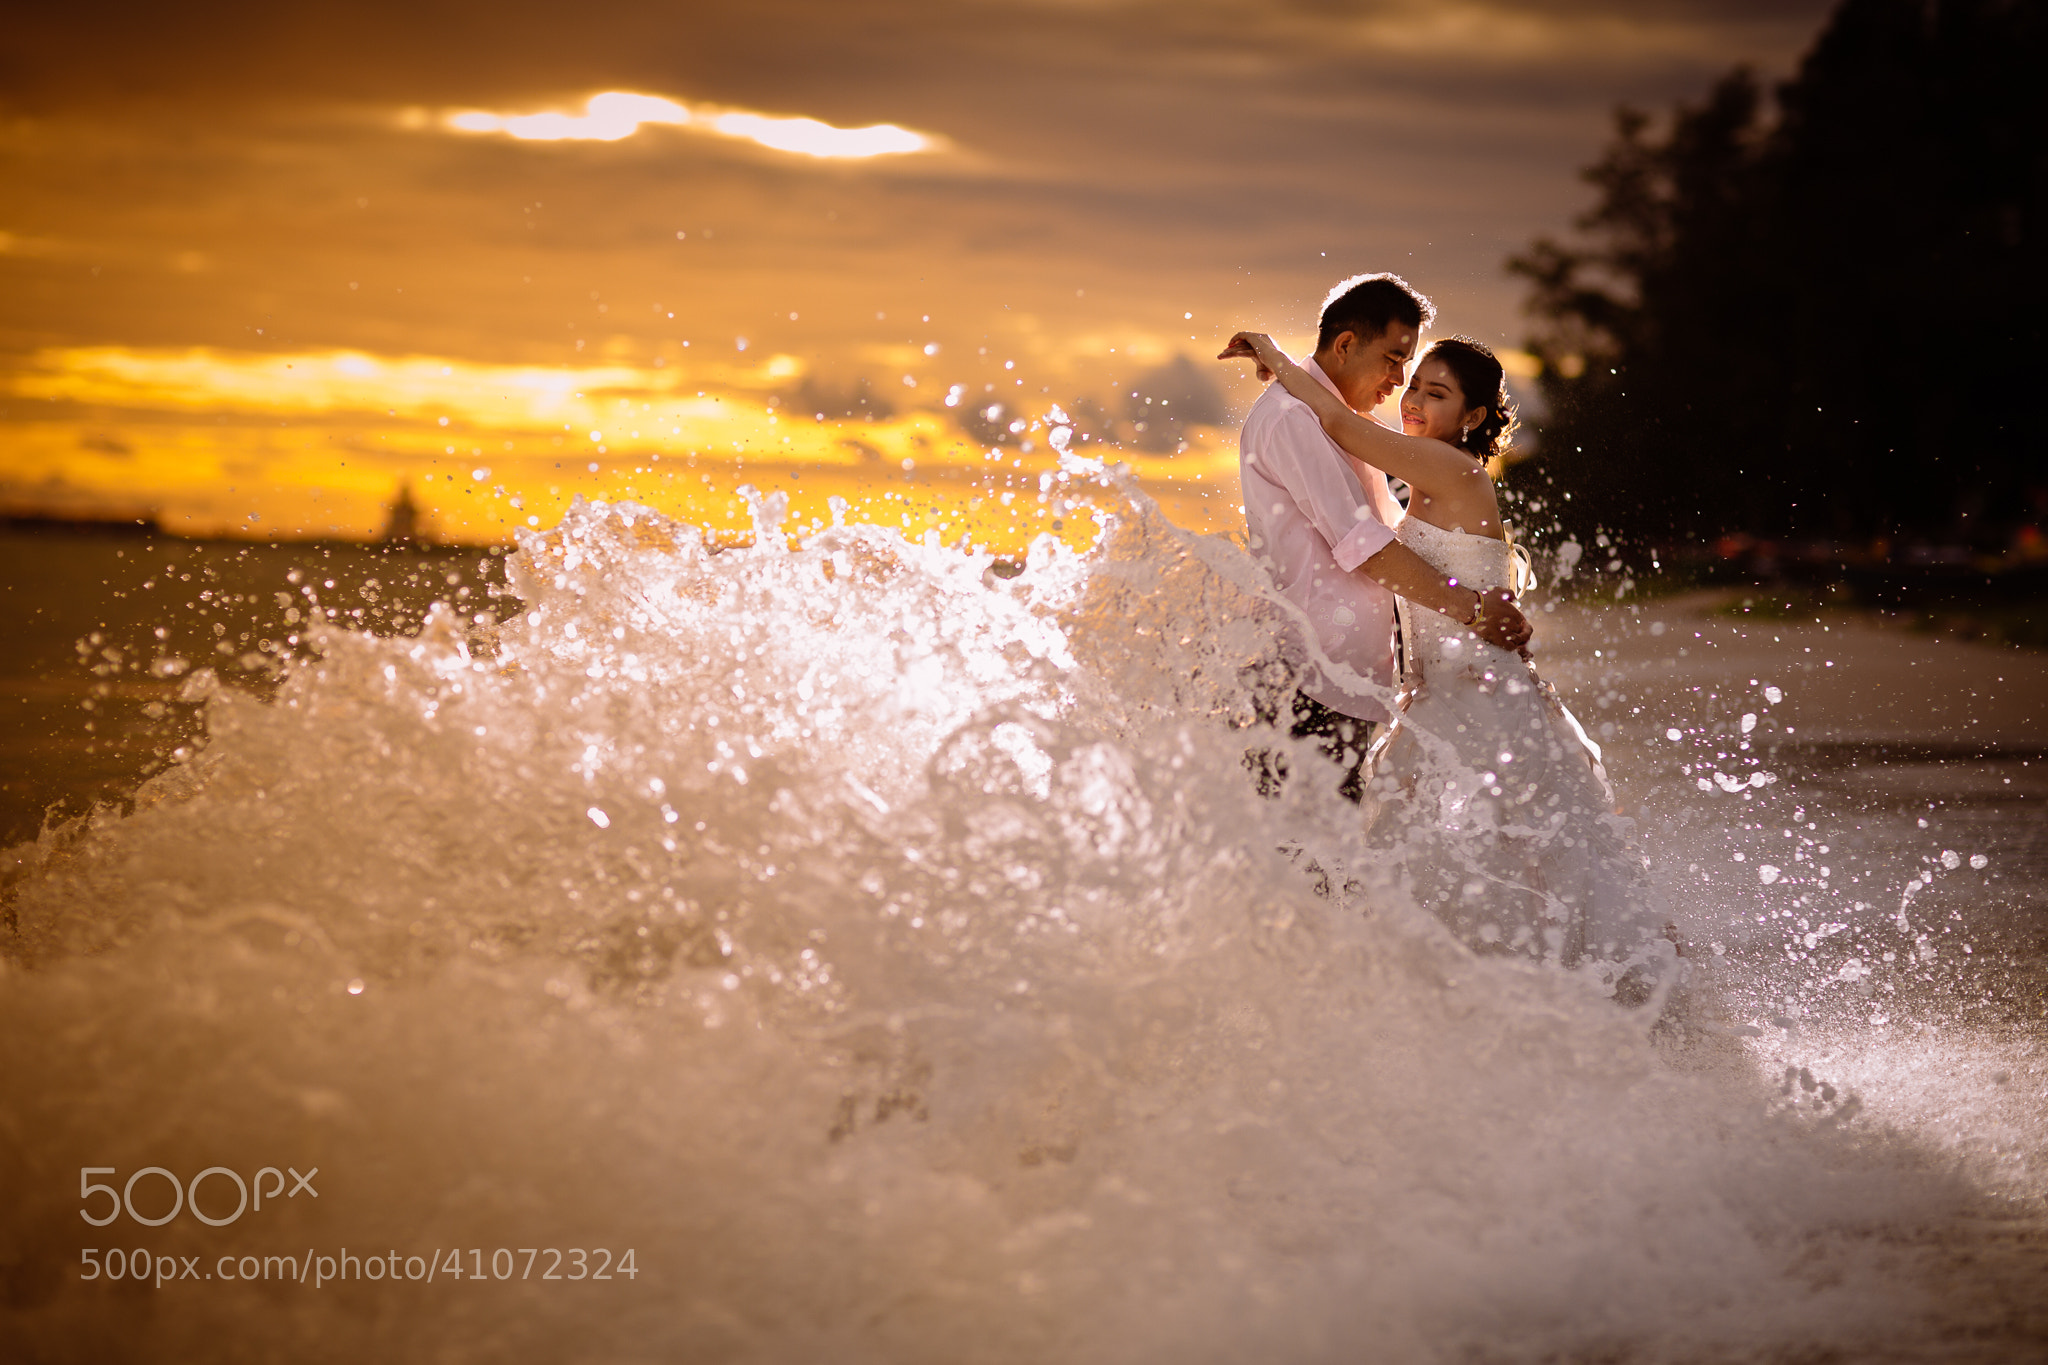 Photograph Wave of Love by Nitipoom S on 500px